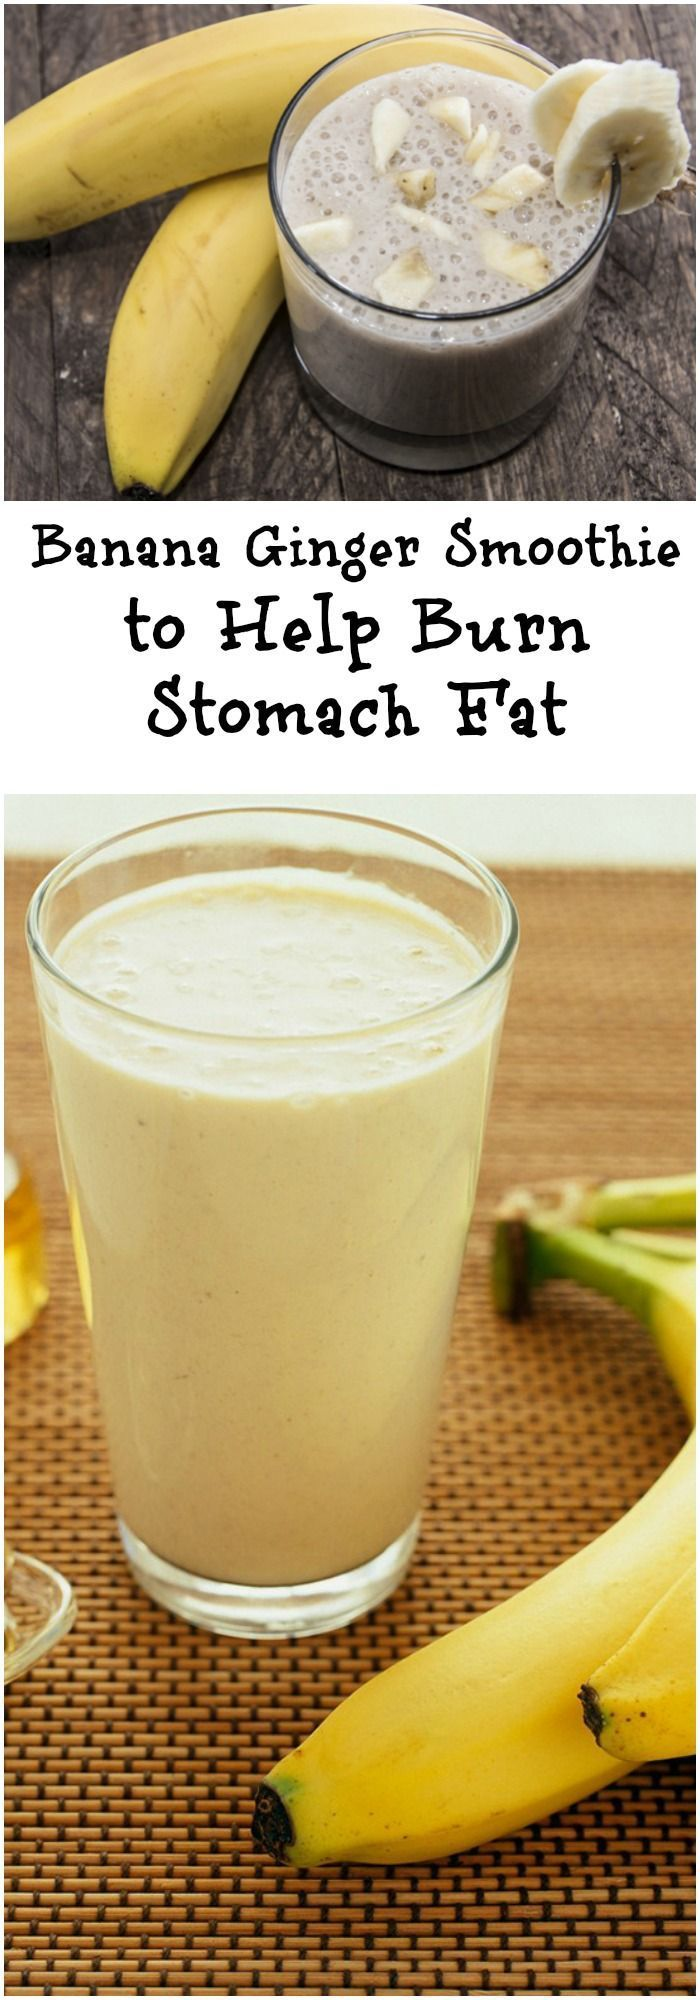 Health And Fitness: Banana and Ginger Smoothie for Weight Loss